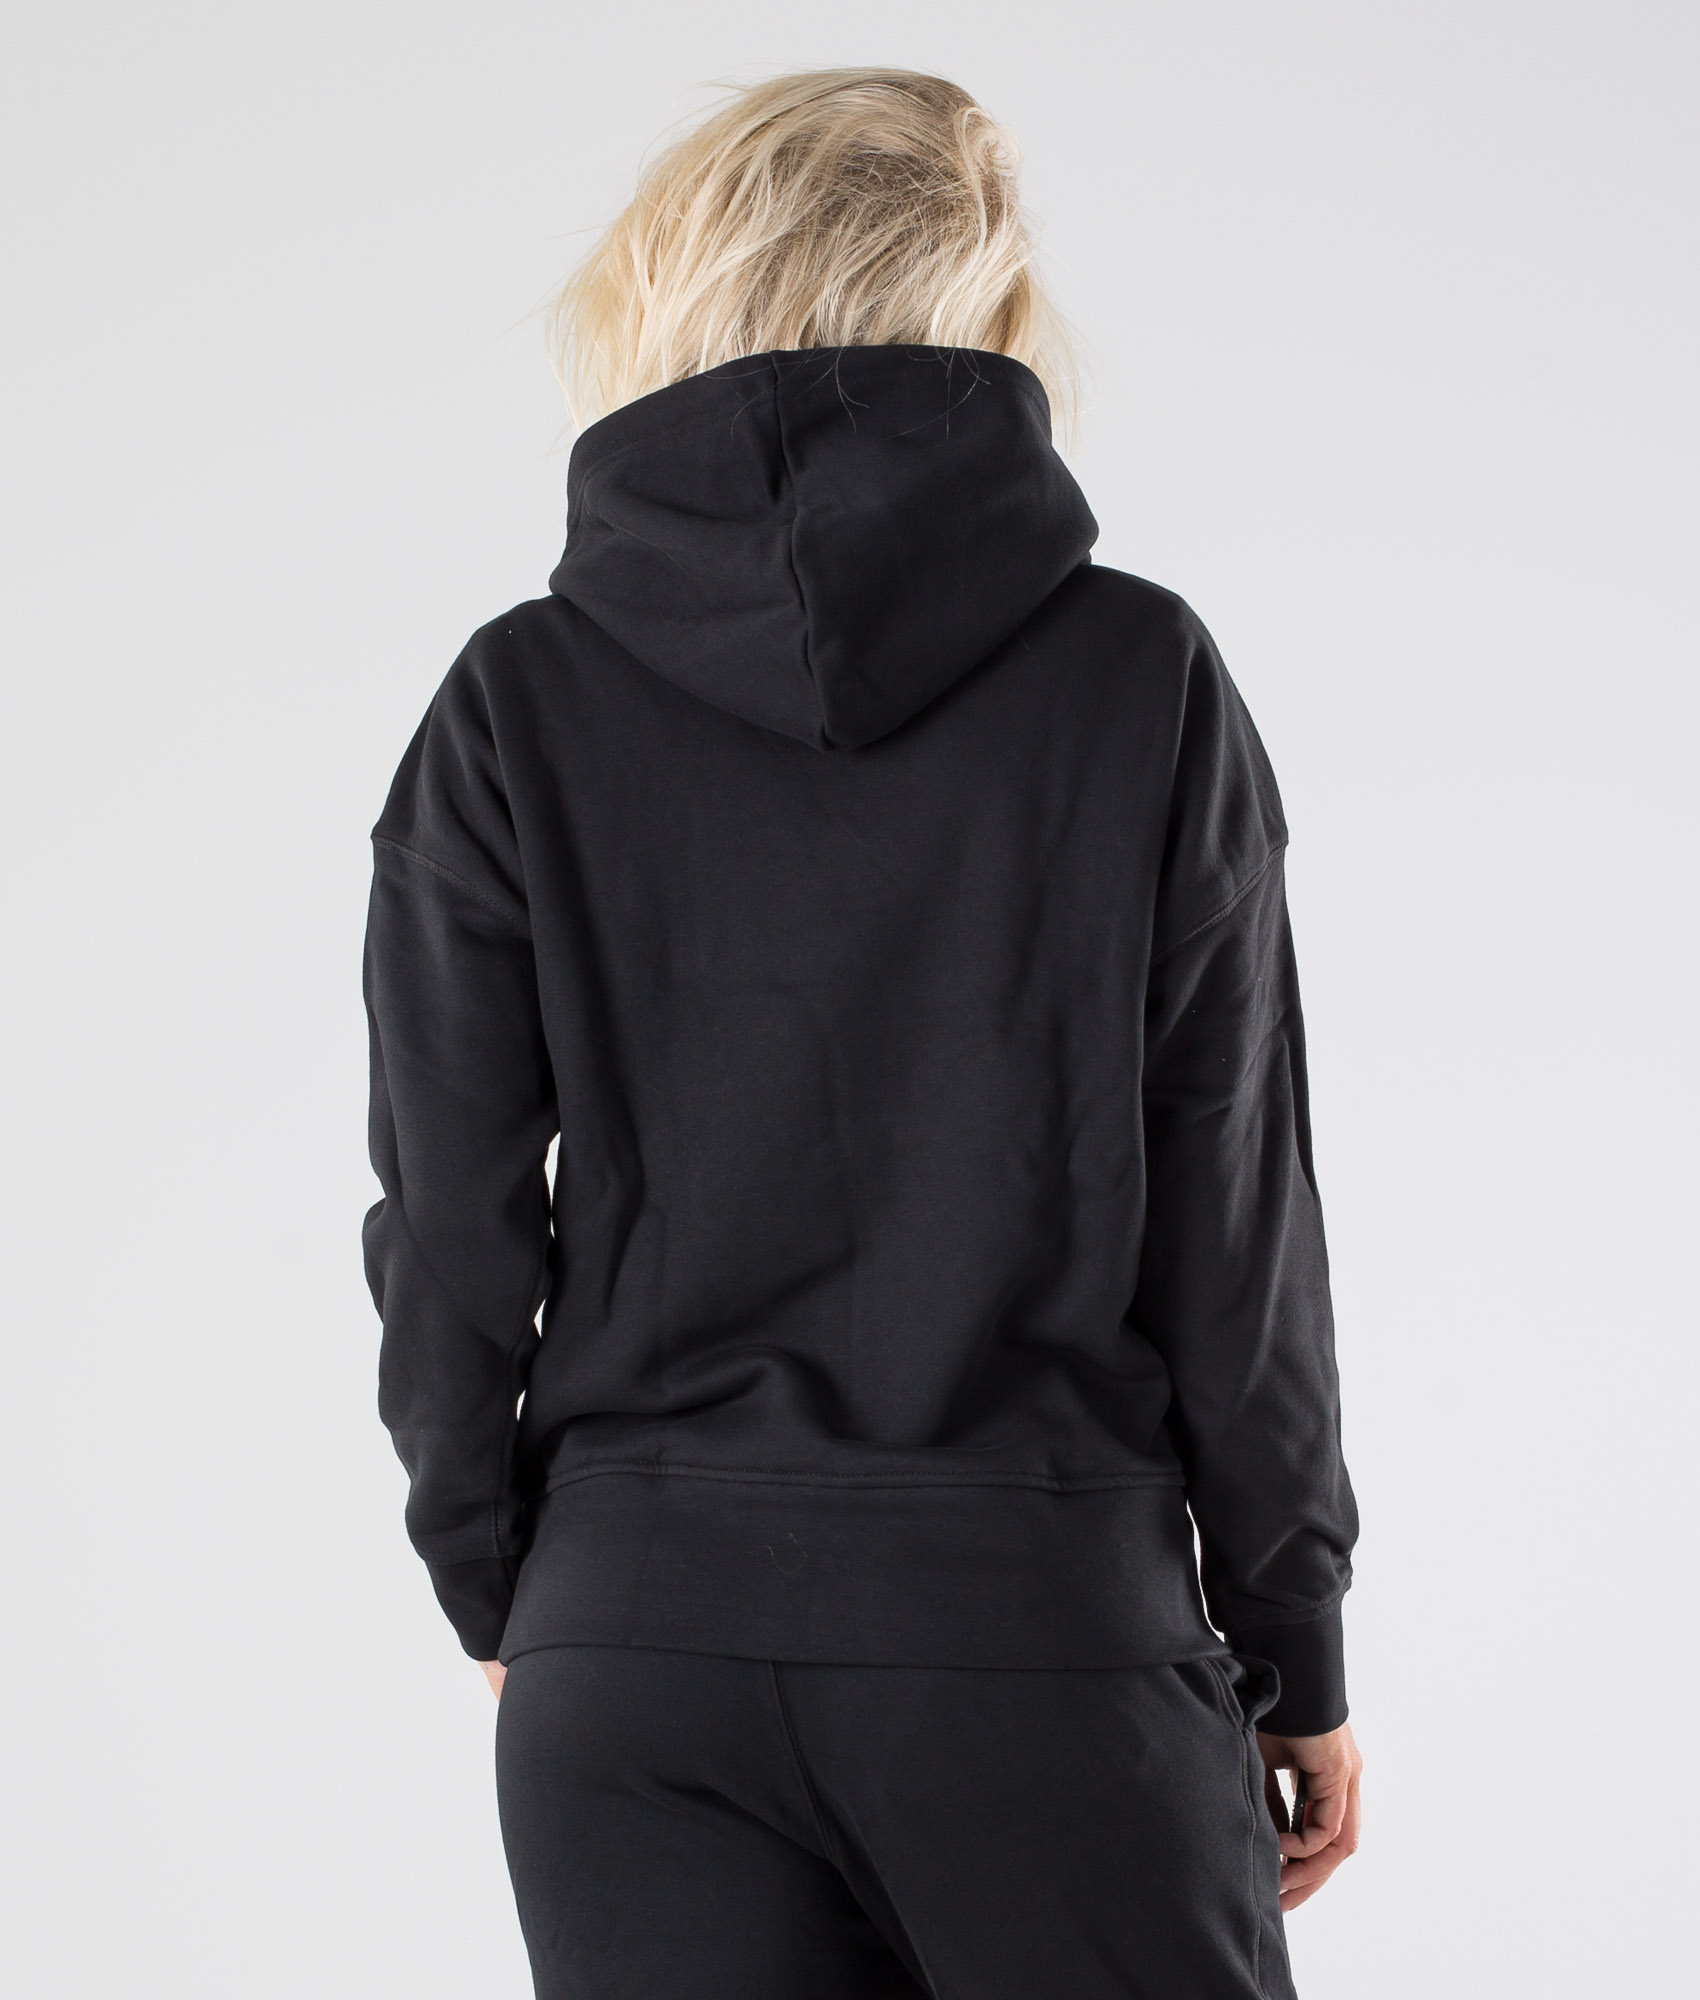 adidas originals black hoodie, adidas Originals